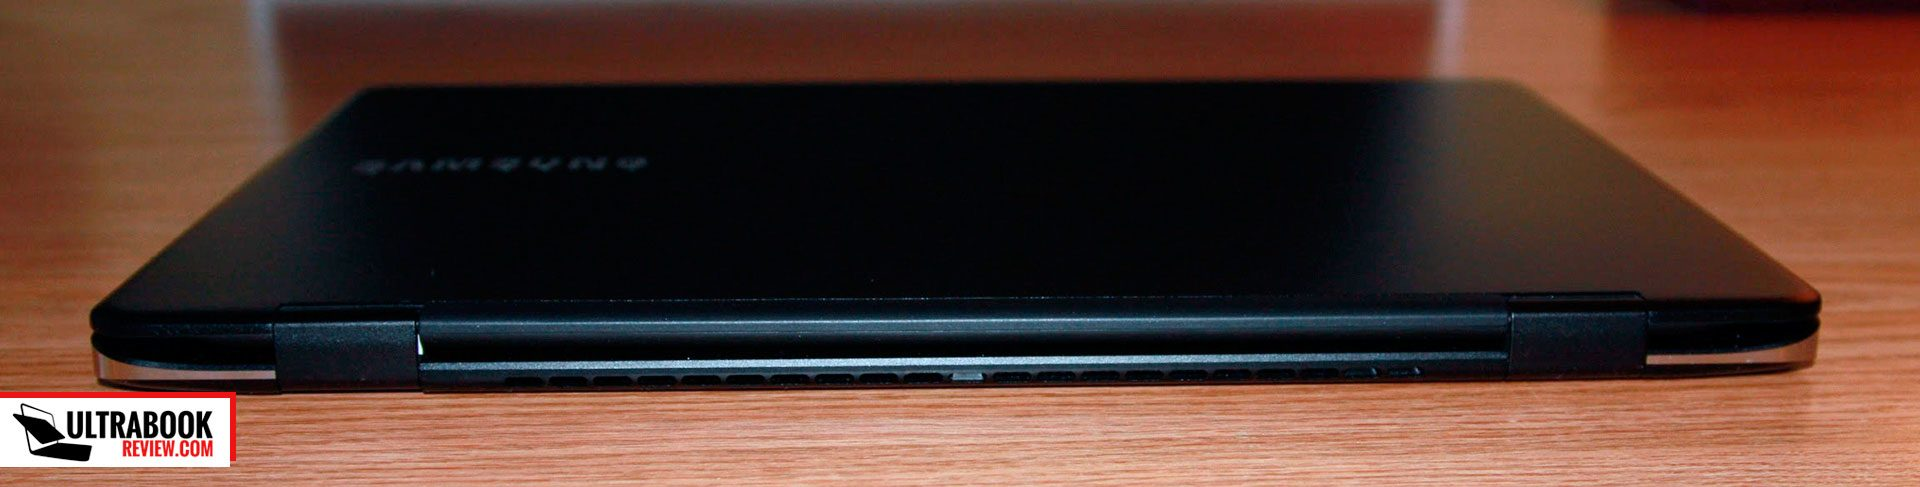 samsung ativ book 9 spin - screen hinges